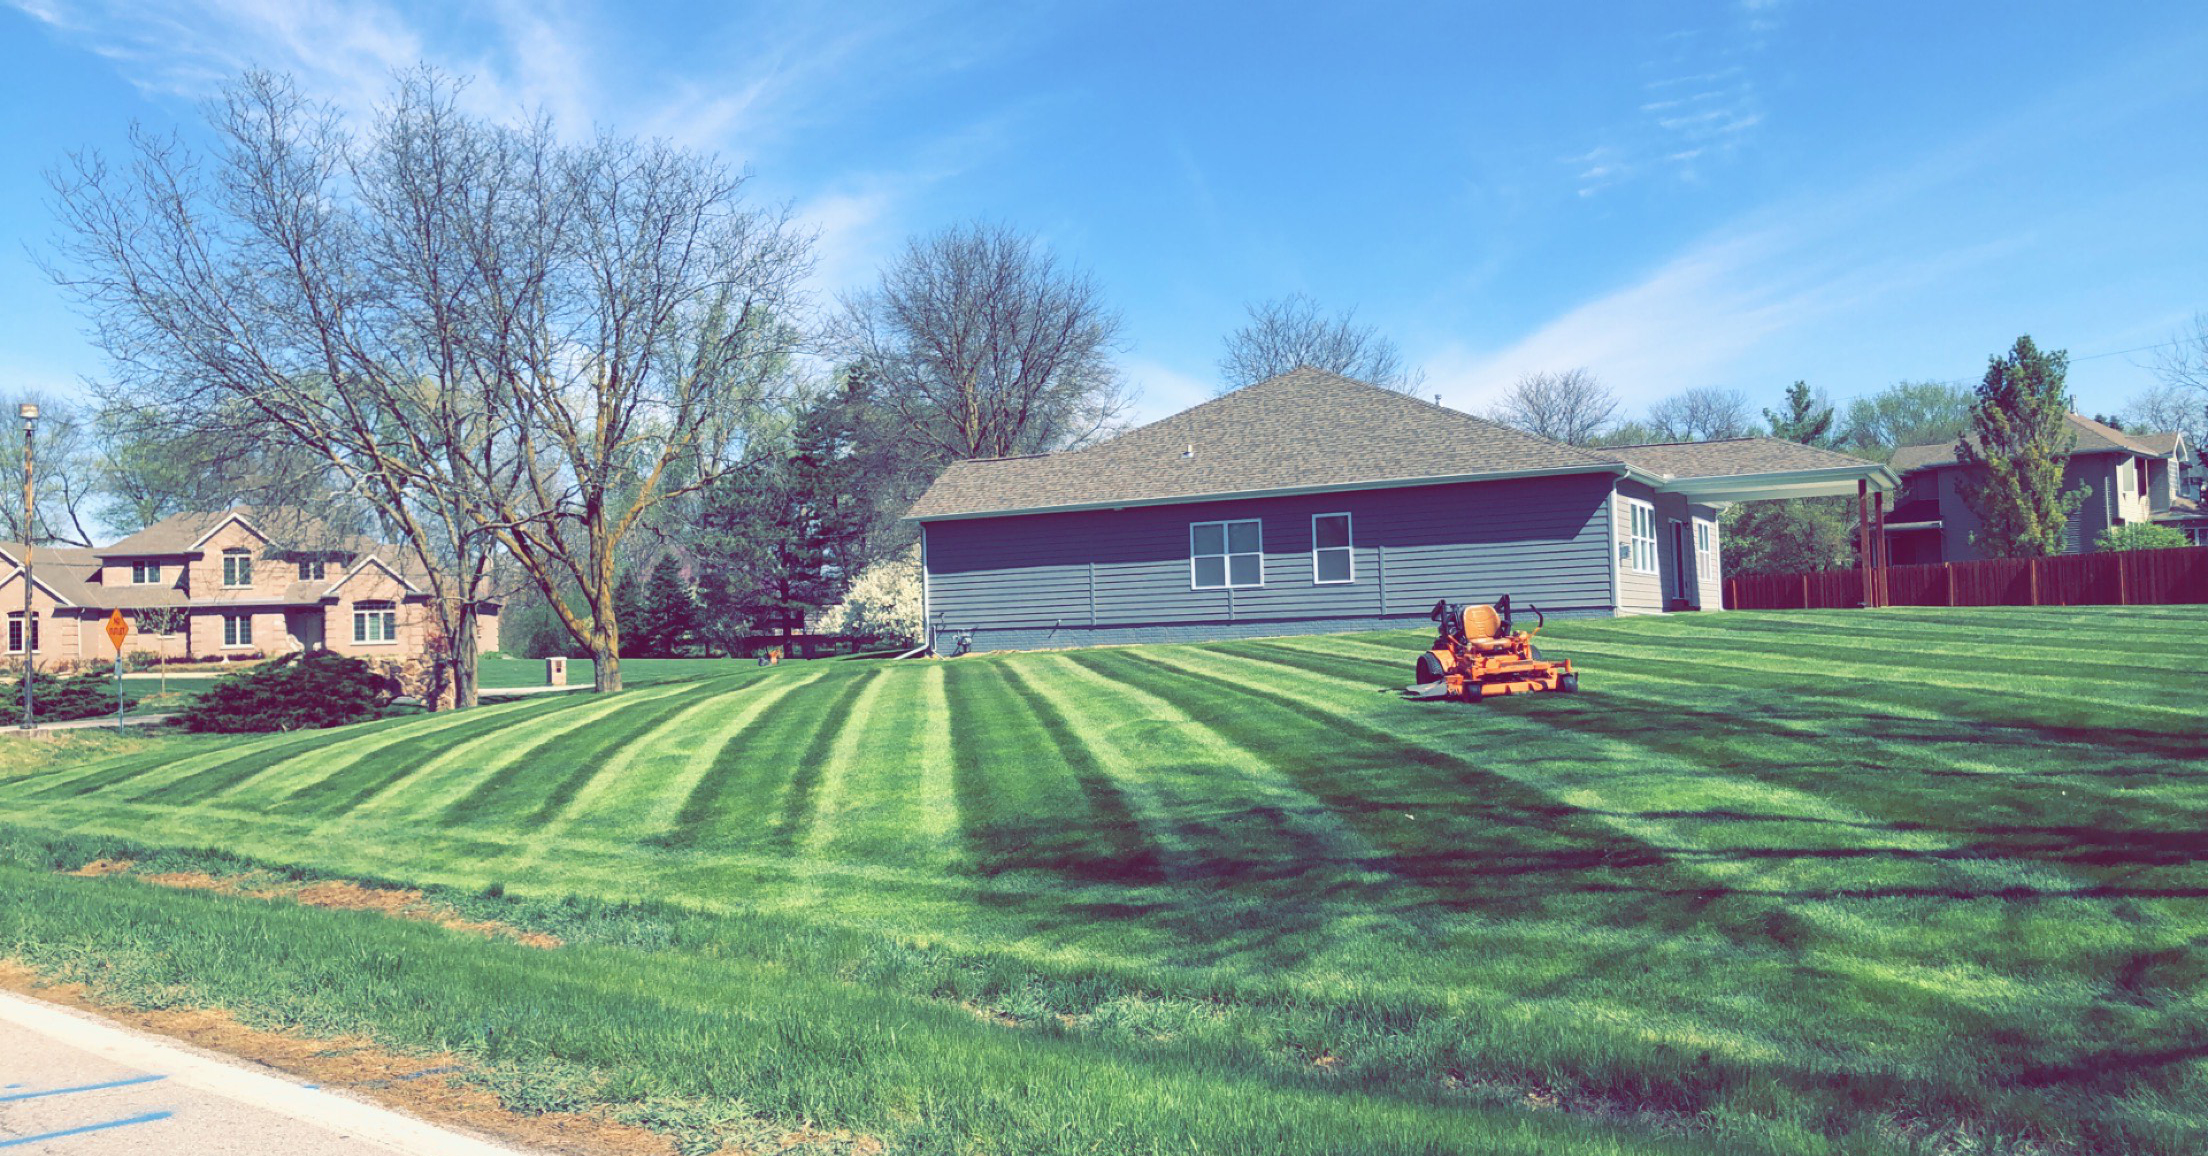 KJK Lawncare is known for mowing stripes, such as the lawn shown in this photo. (Courtesy KJK Lawncare)